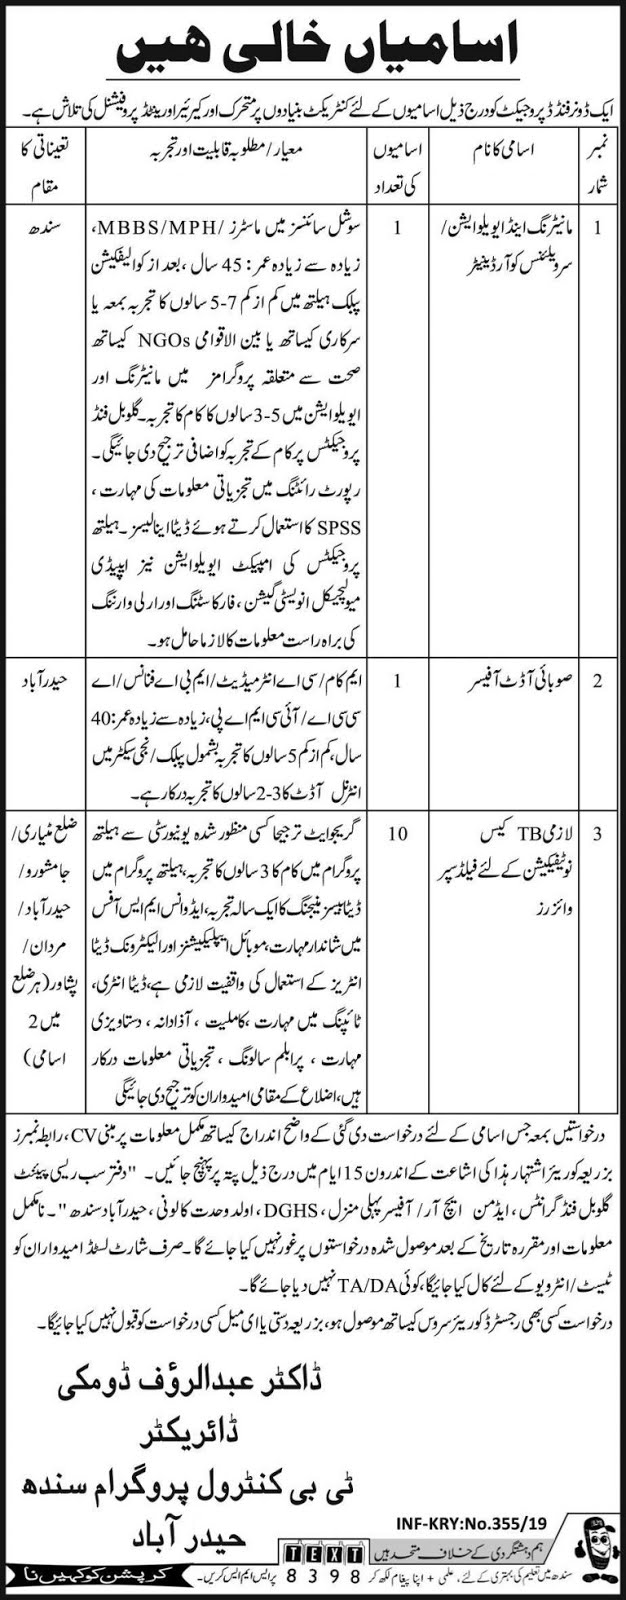 national tb control program,national tb control program in jobs 2019,national tb control program in jobs 2019 || tahseen jobs,jobs in provincial tb control program (ptcp,pakistan,pronvincial tb control program punjab,jobs,pakistan jobs,national,pakistan jobs 2019,pakistan jobs 2018,pakistan new jobs 2019,jobs in pakistan,control,program,jobs pakistan,jobs in pakistan 2018,former tb control punjab